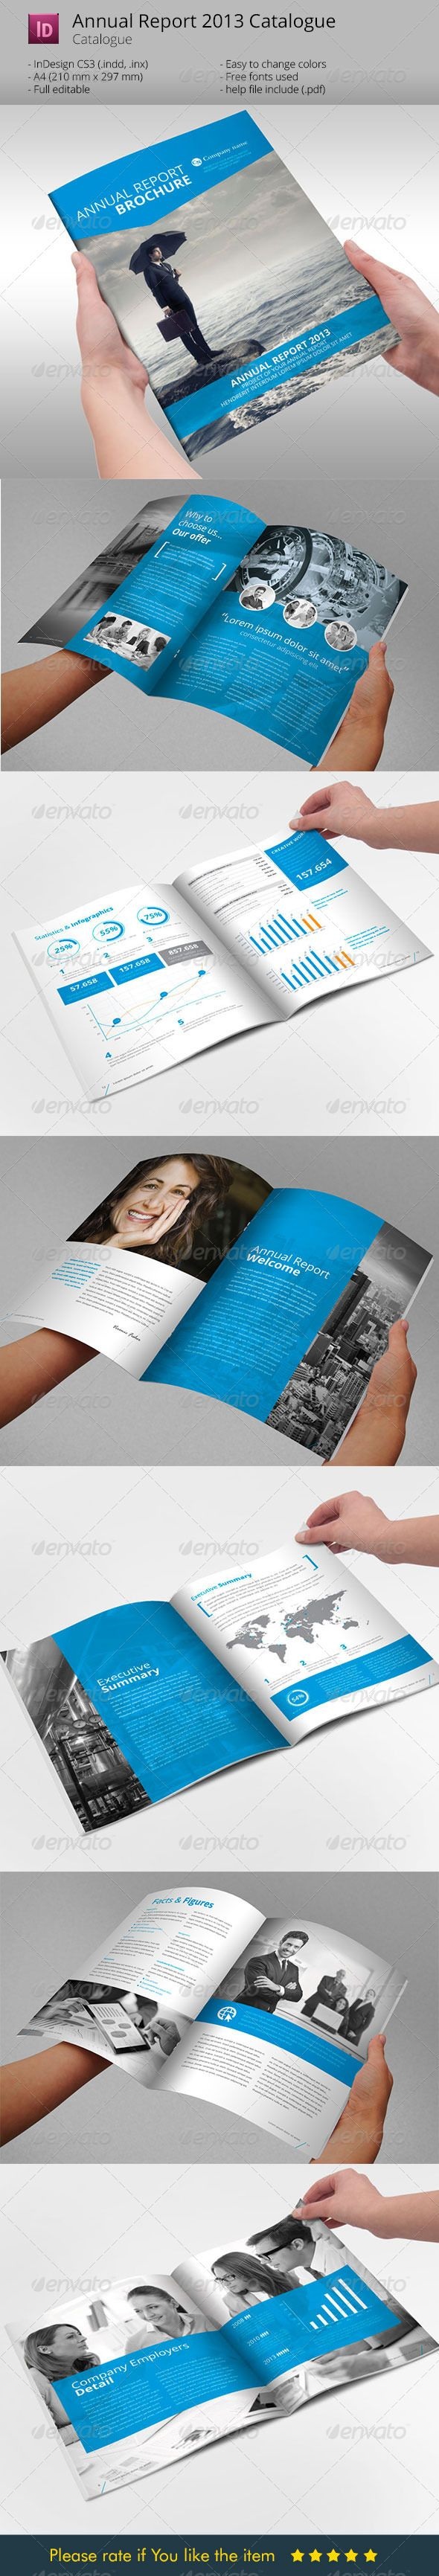 Annual Report Brochure Indesign Template | Catálogo